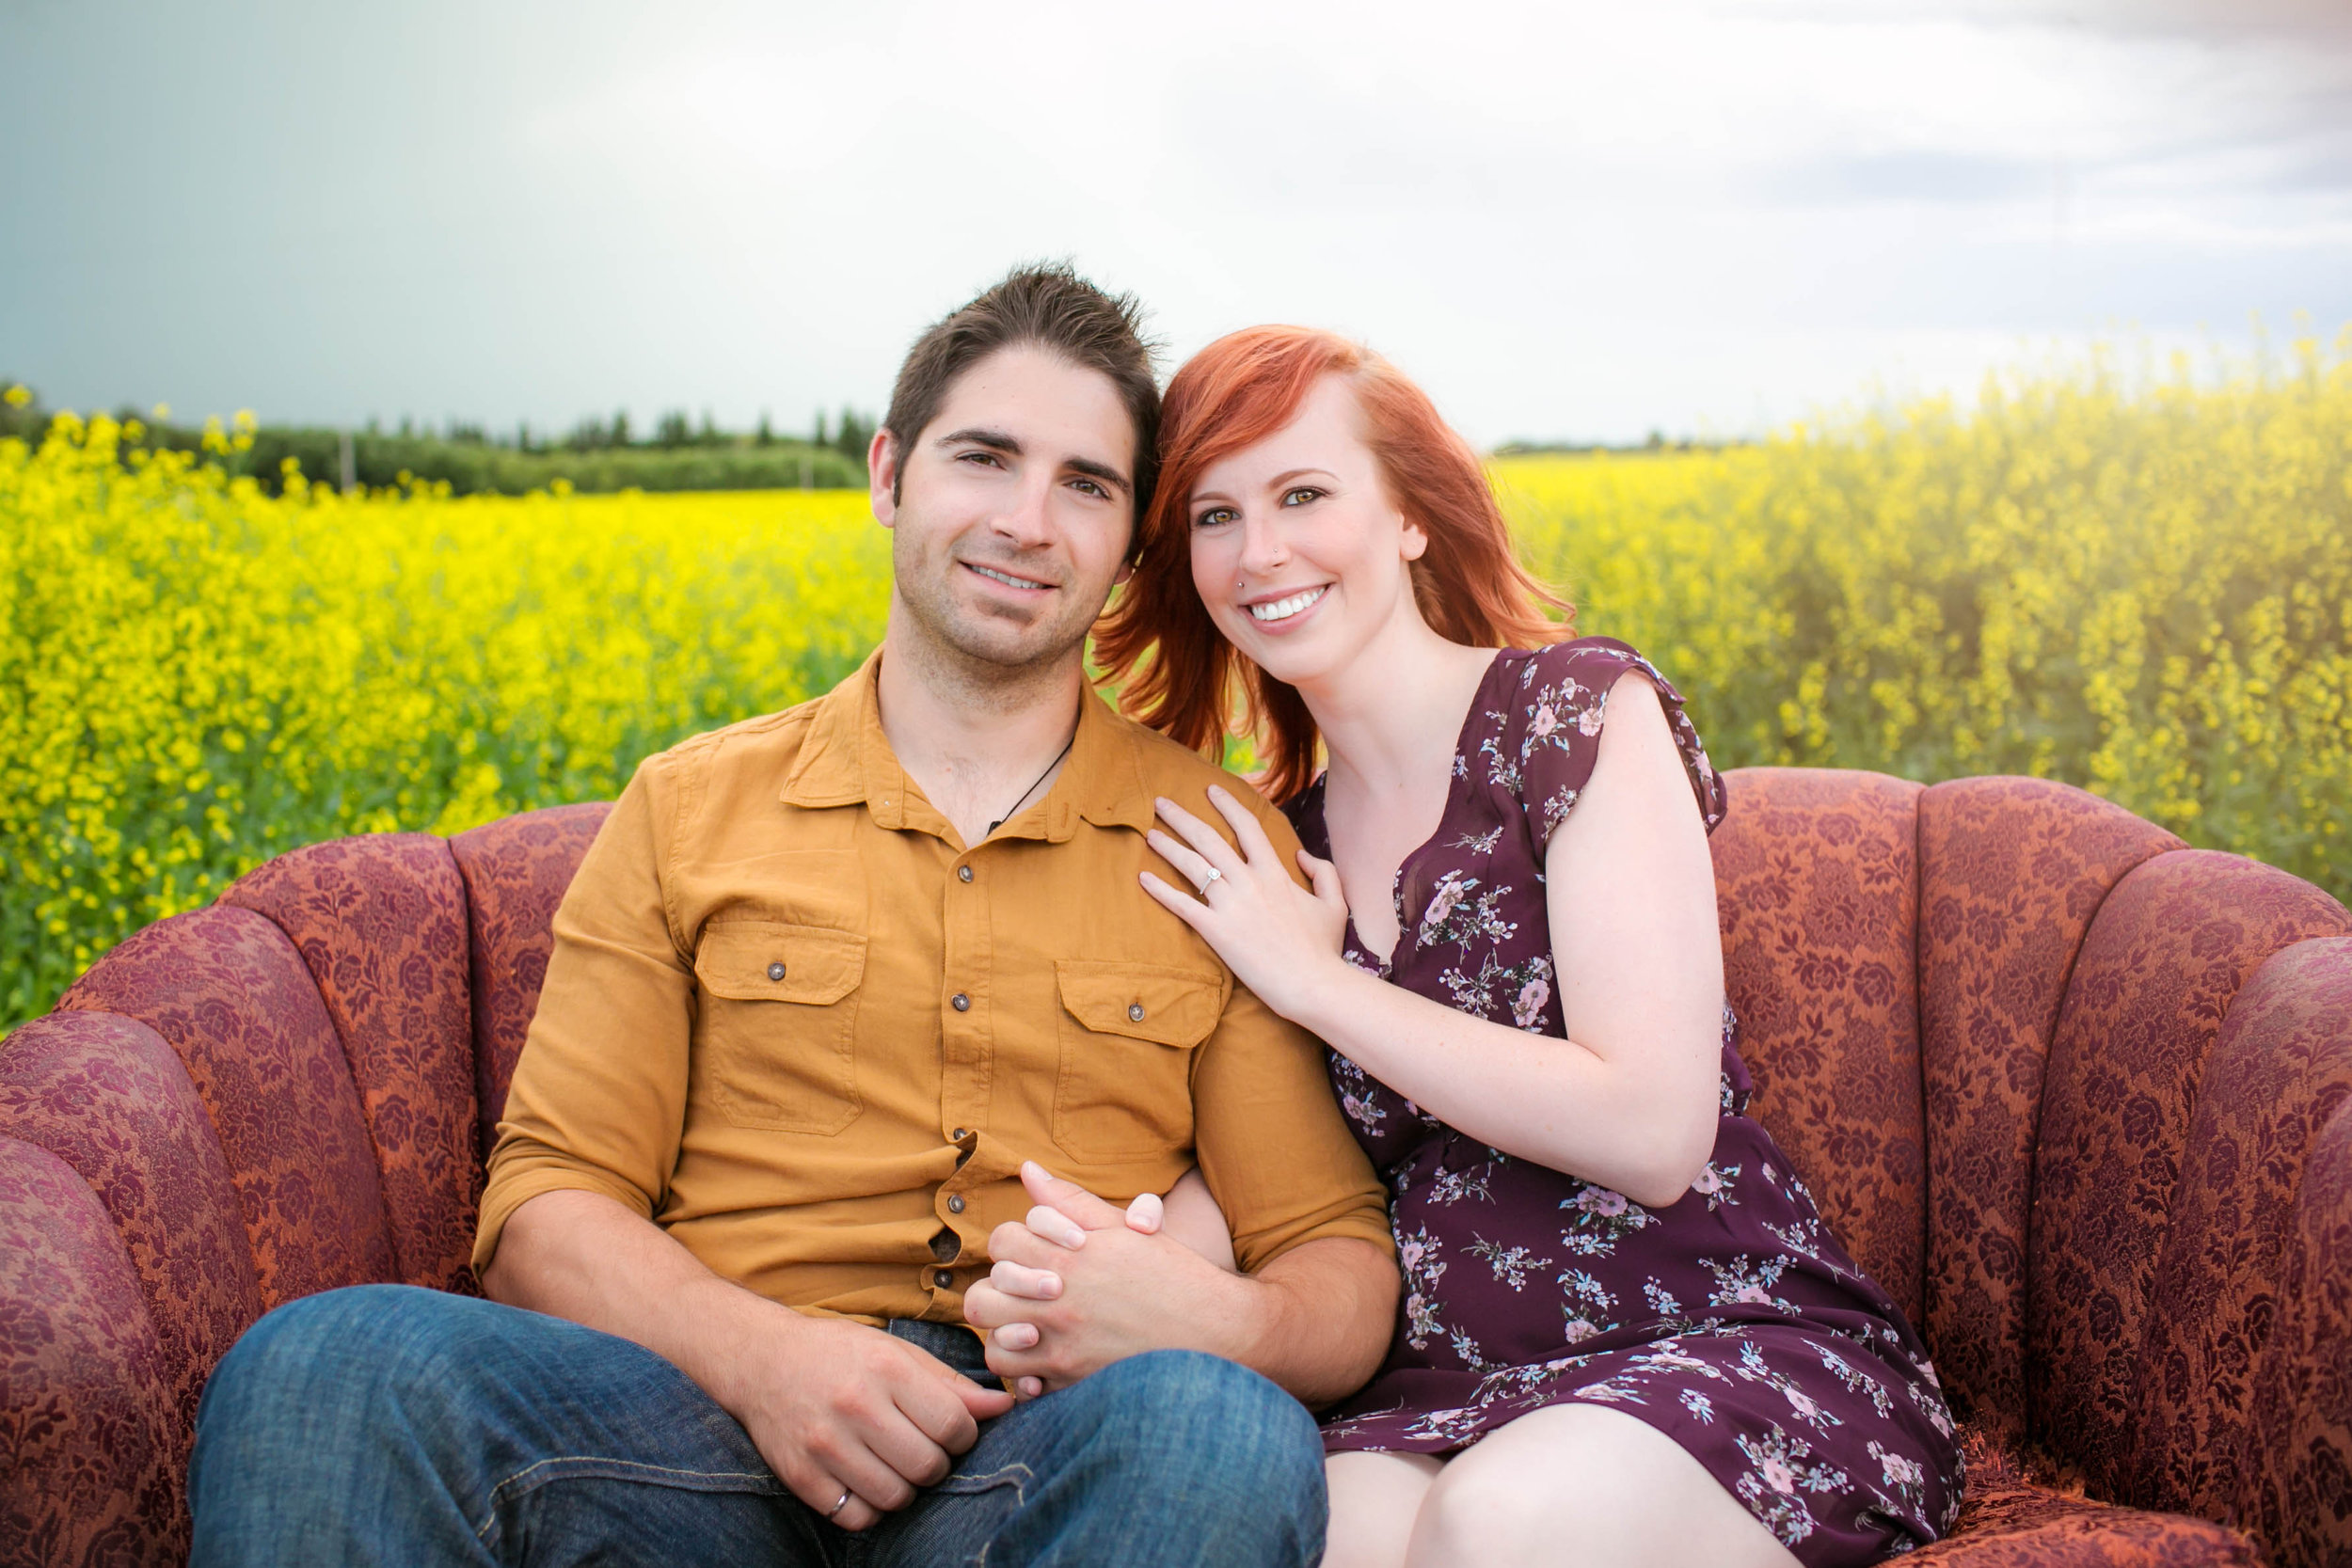 engagement_yeg-15.jpg